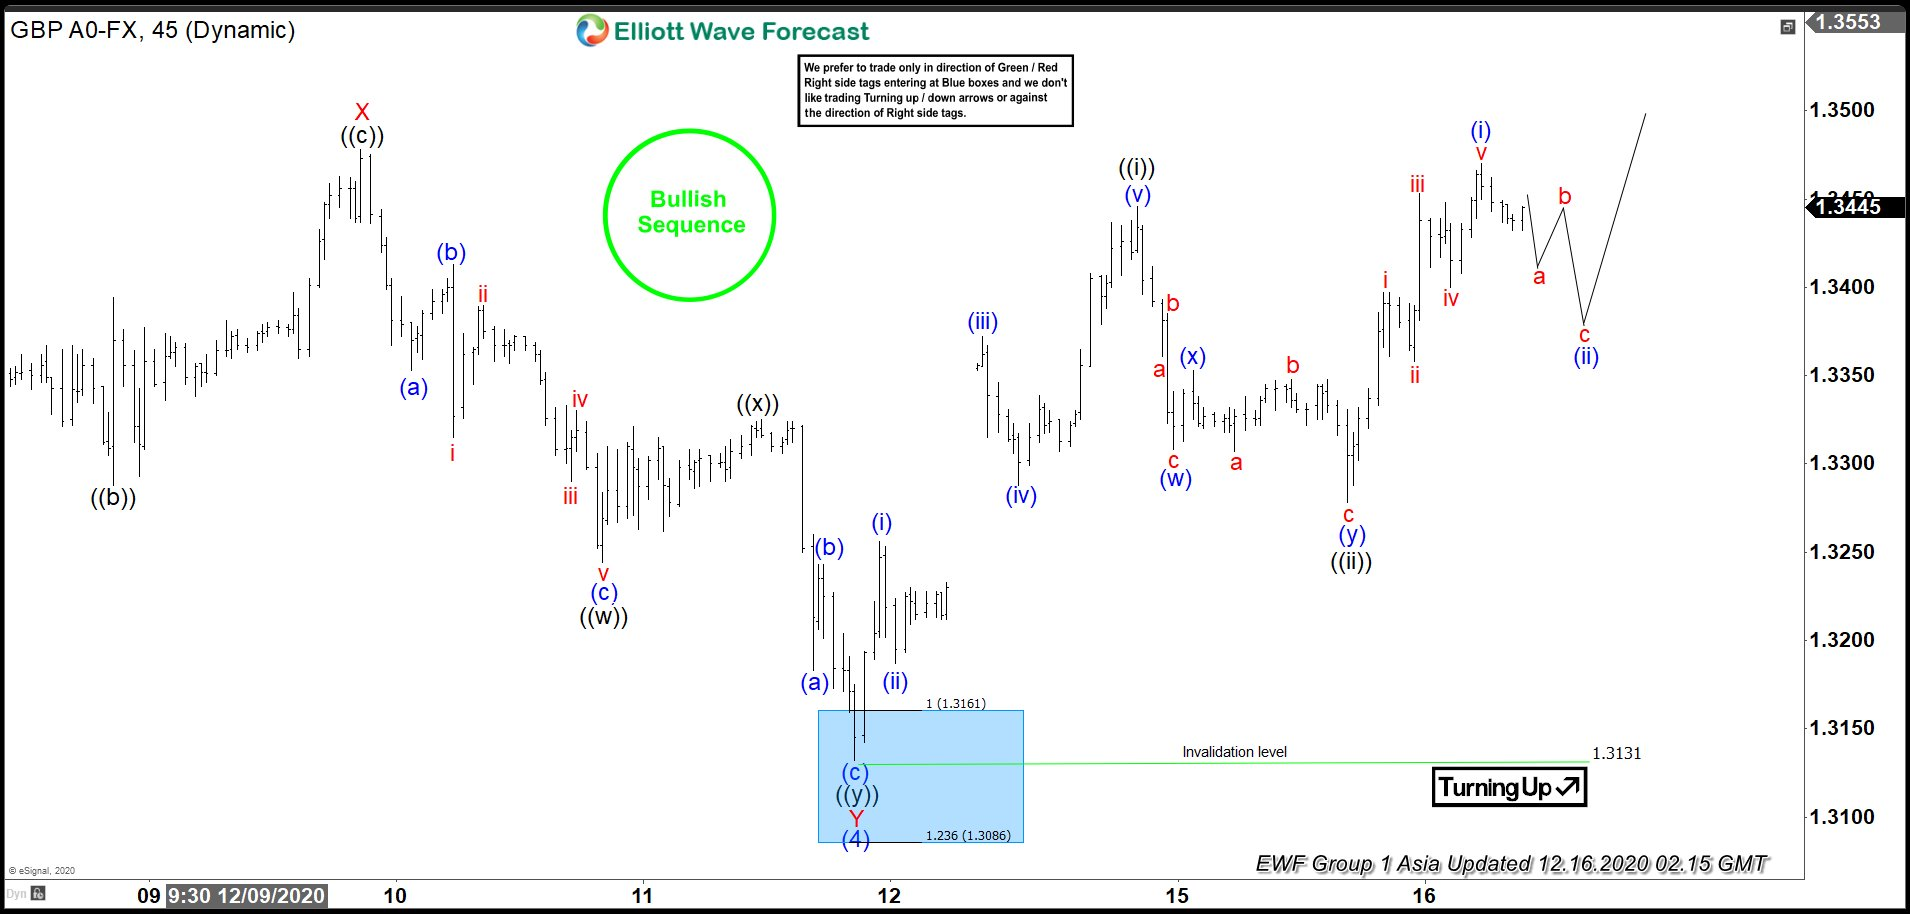 Elliott Wave View: GBPUSD Bullish Sequence Favors More Upside